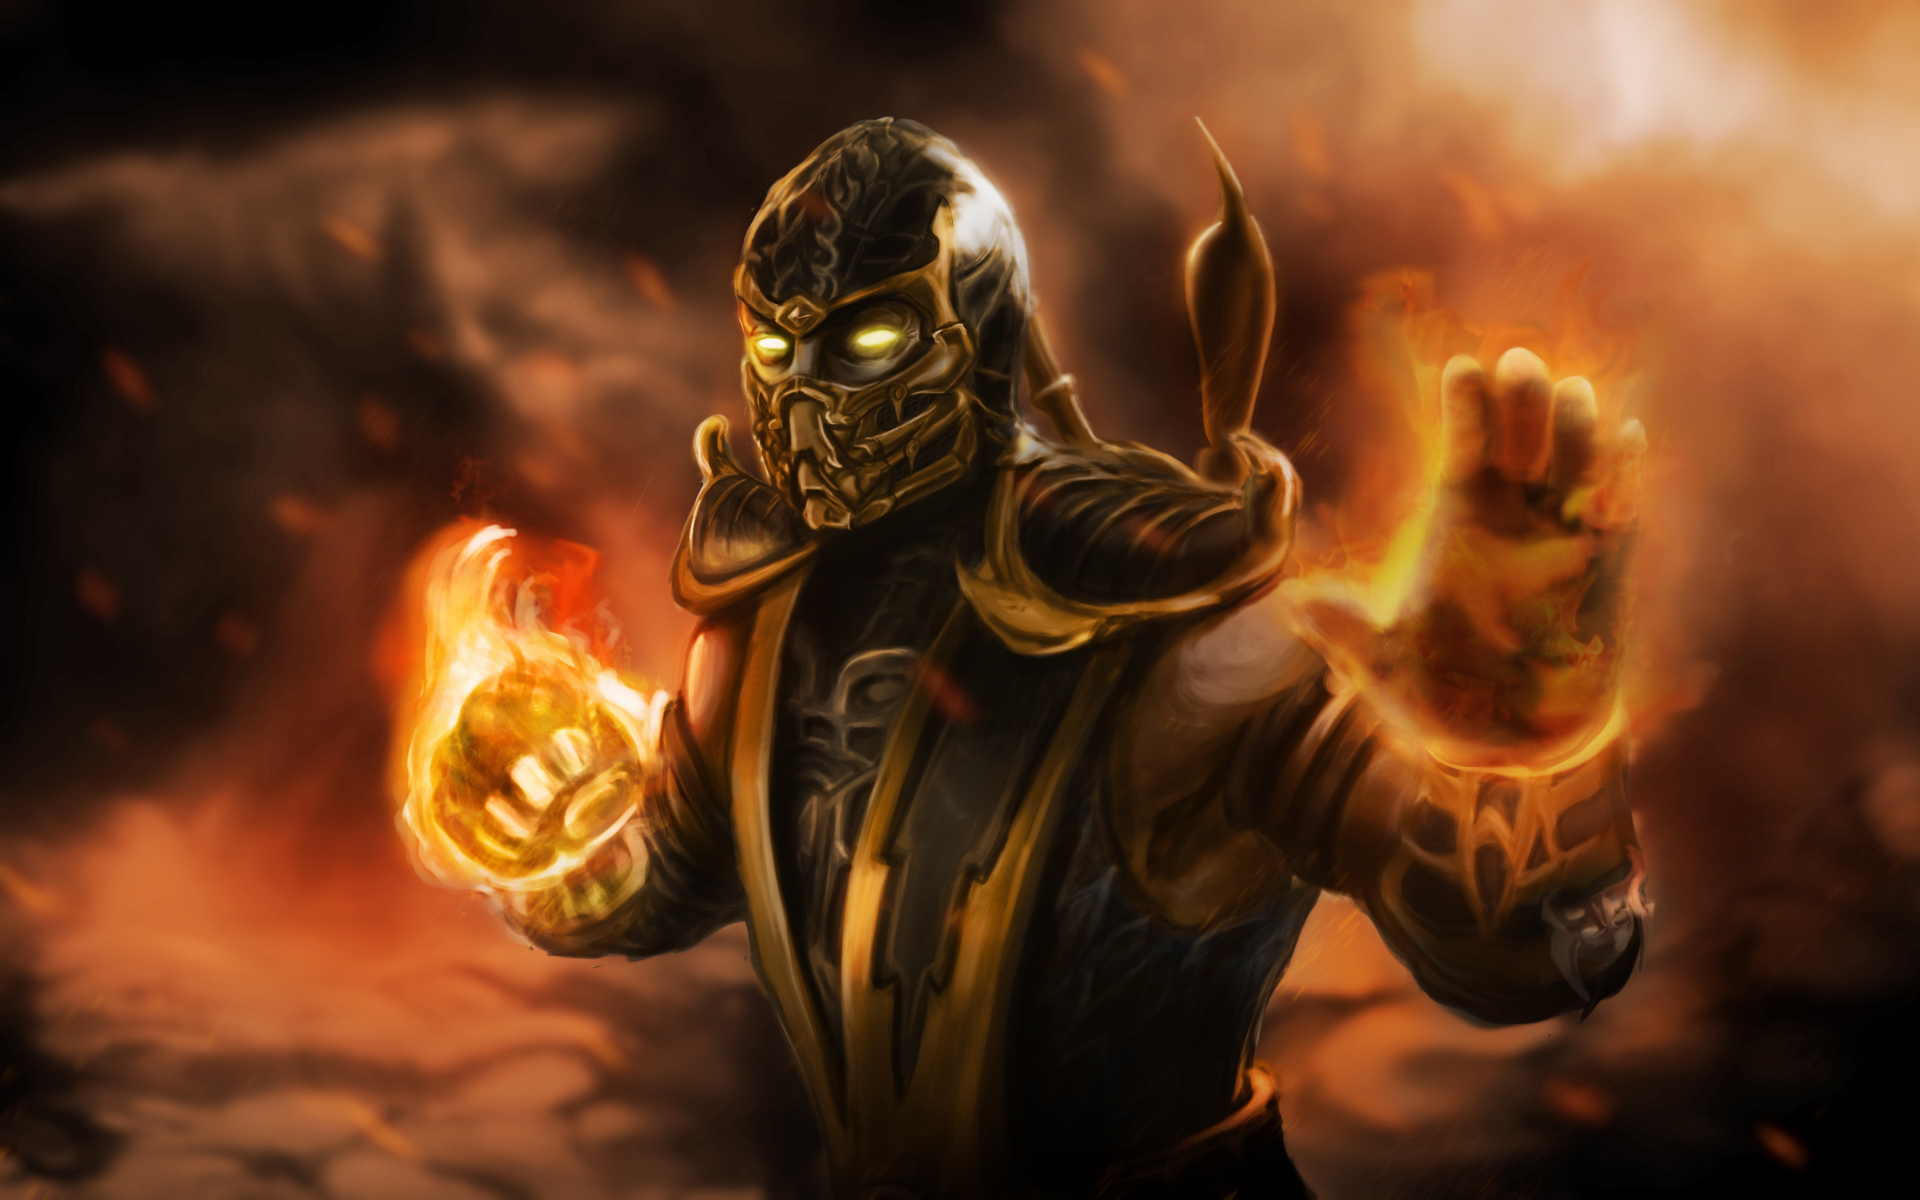 mortal kombat background A4